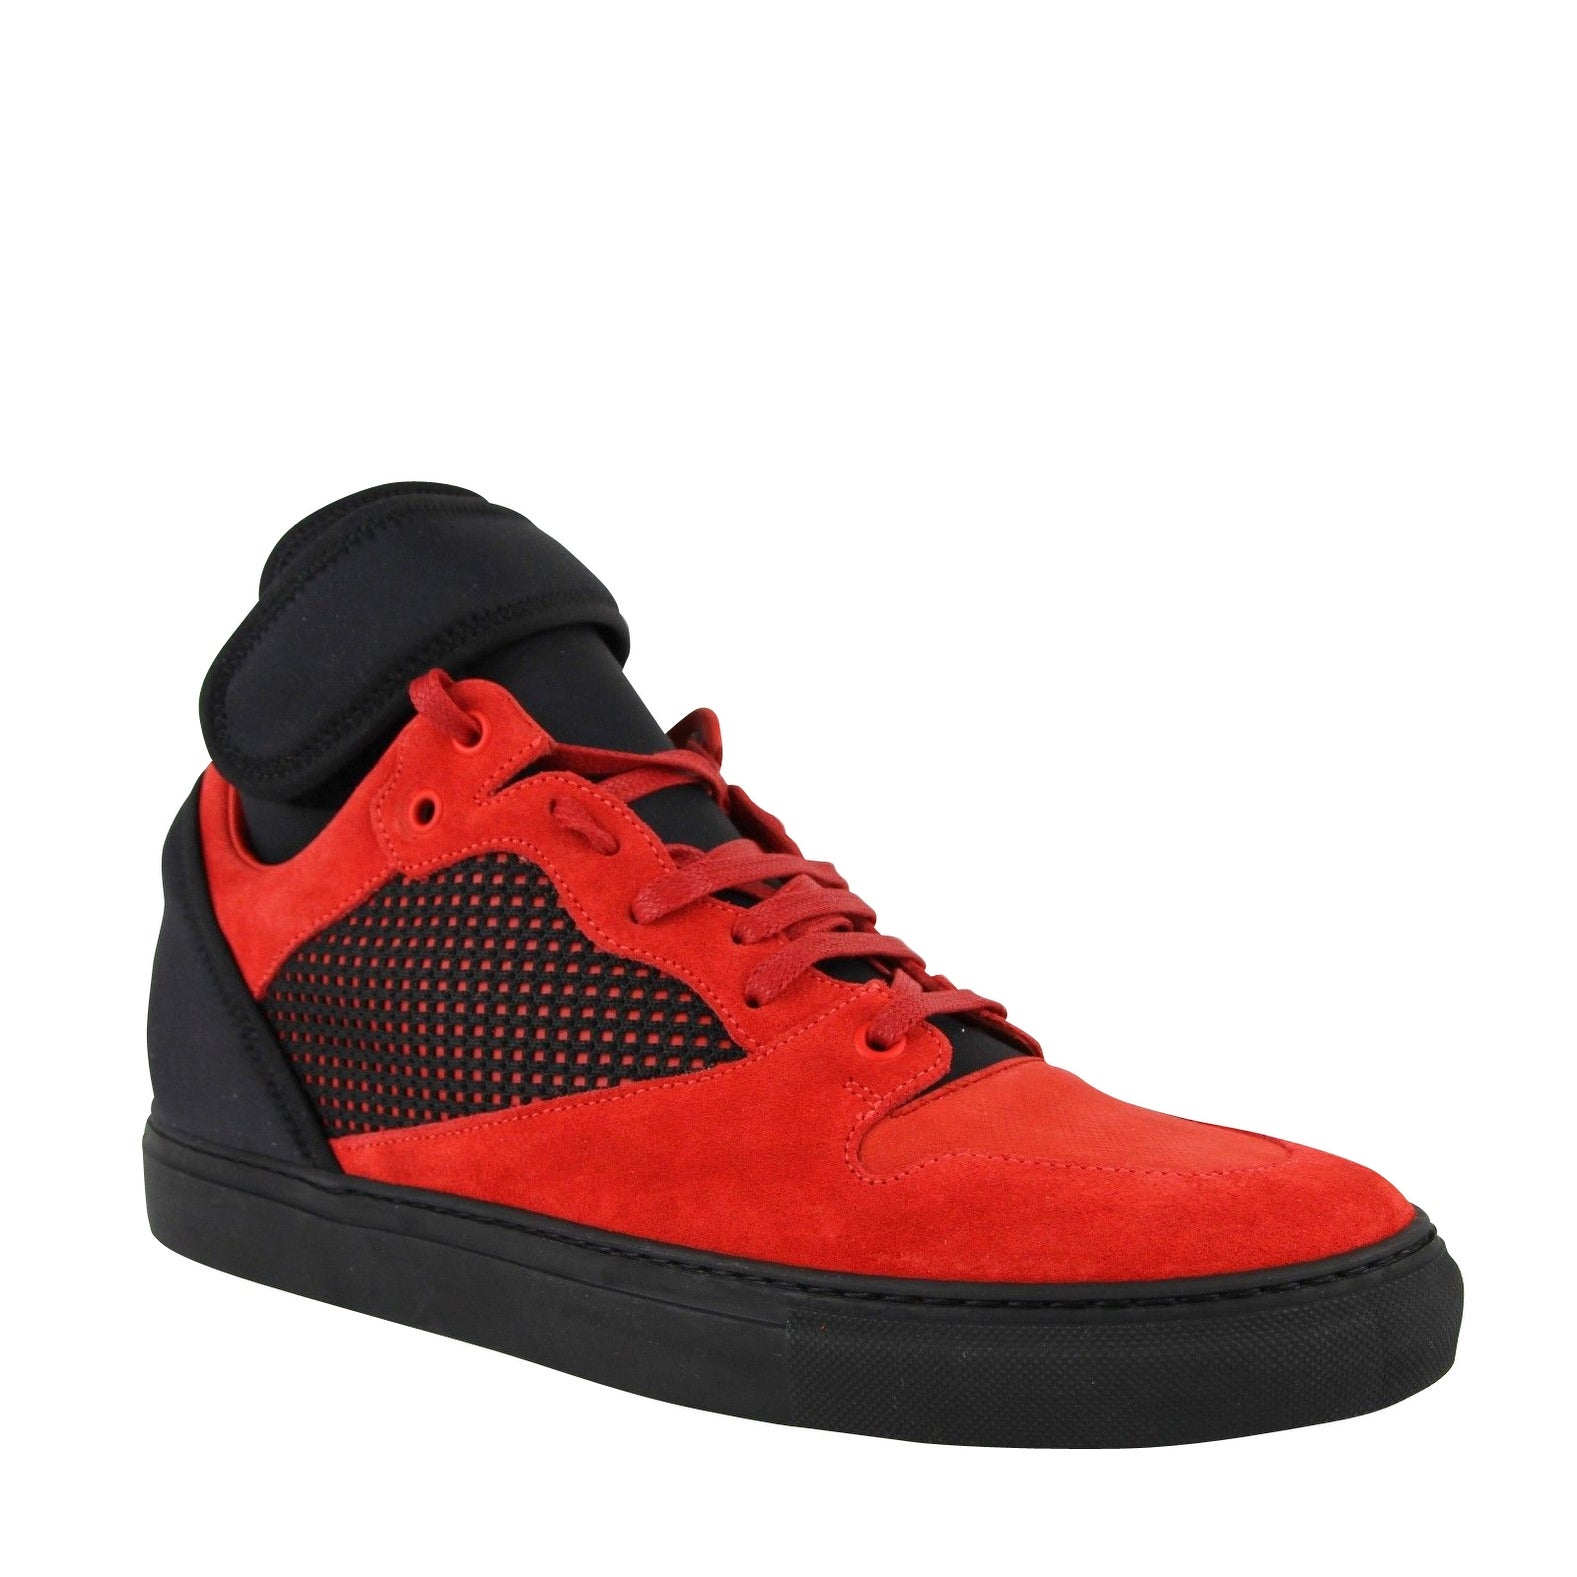 Red Suede Leather Sneakers 412349 6561